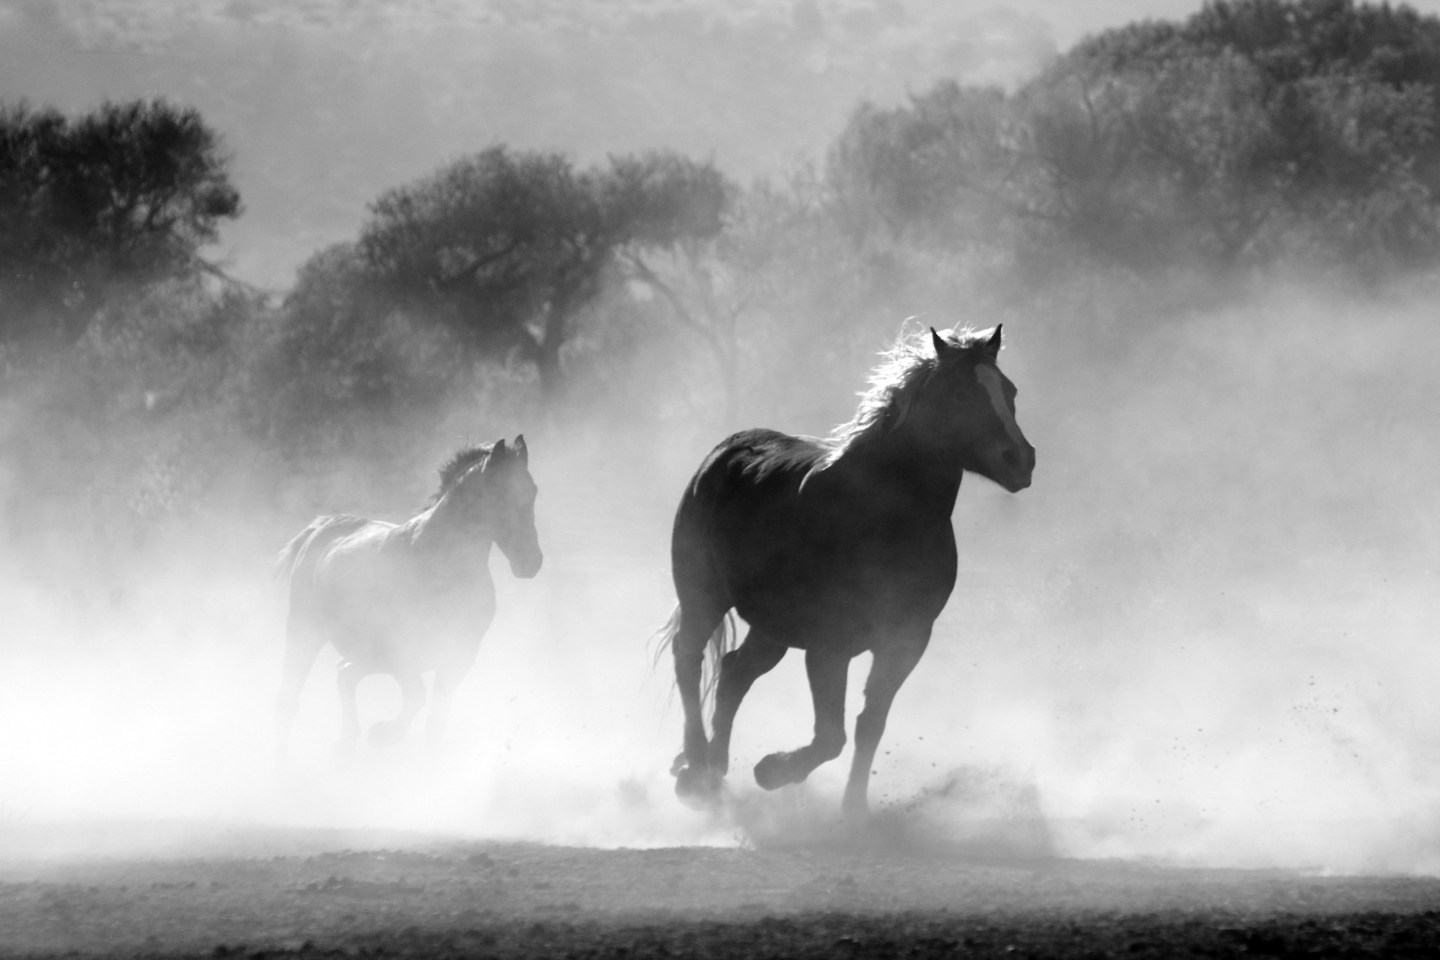 horse herd fog nature 52500 - Mental Health and the lessons horses can teach us